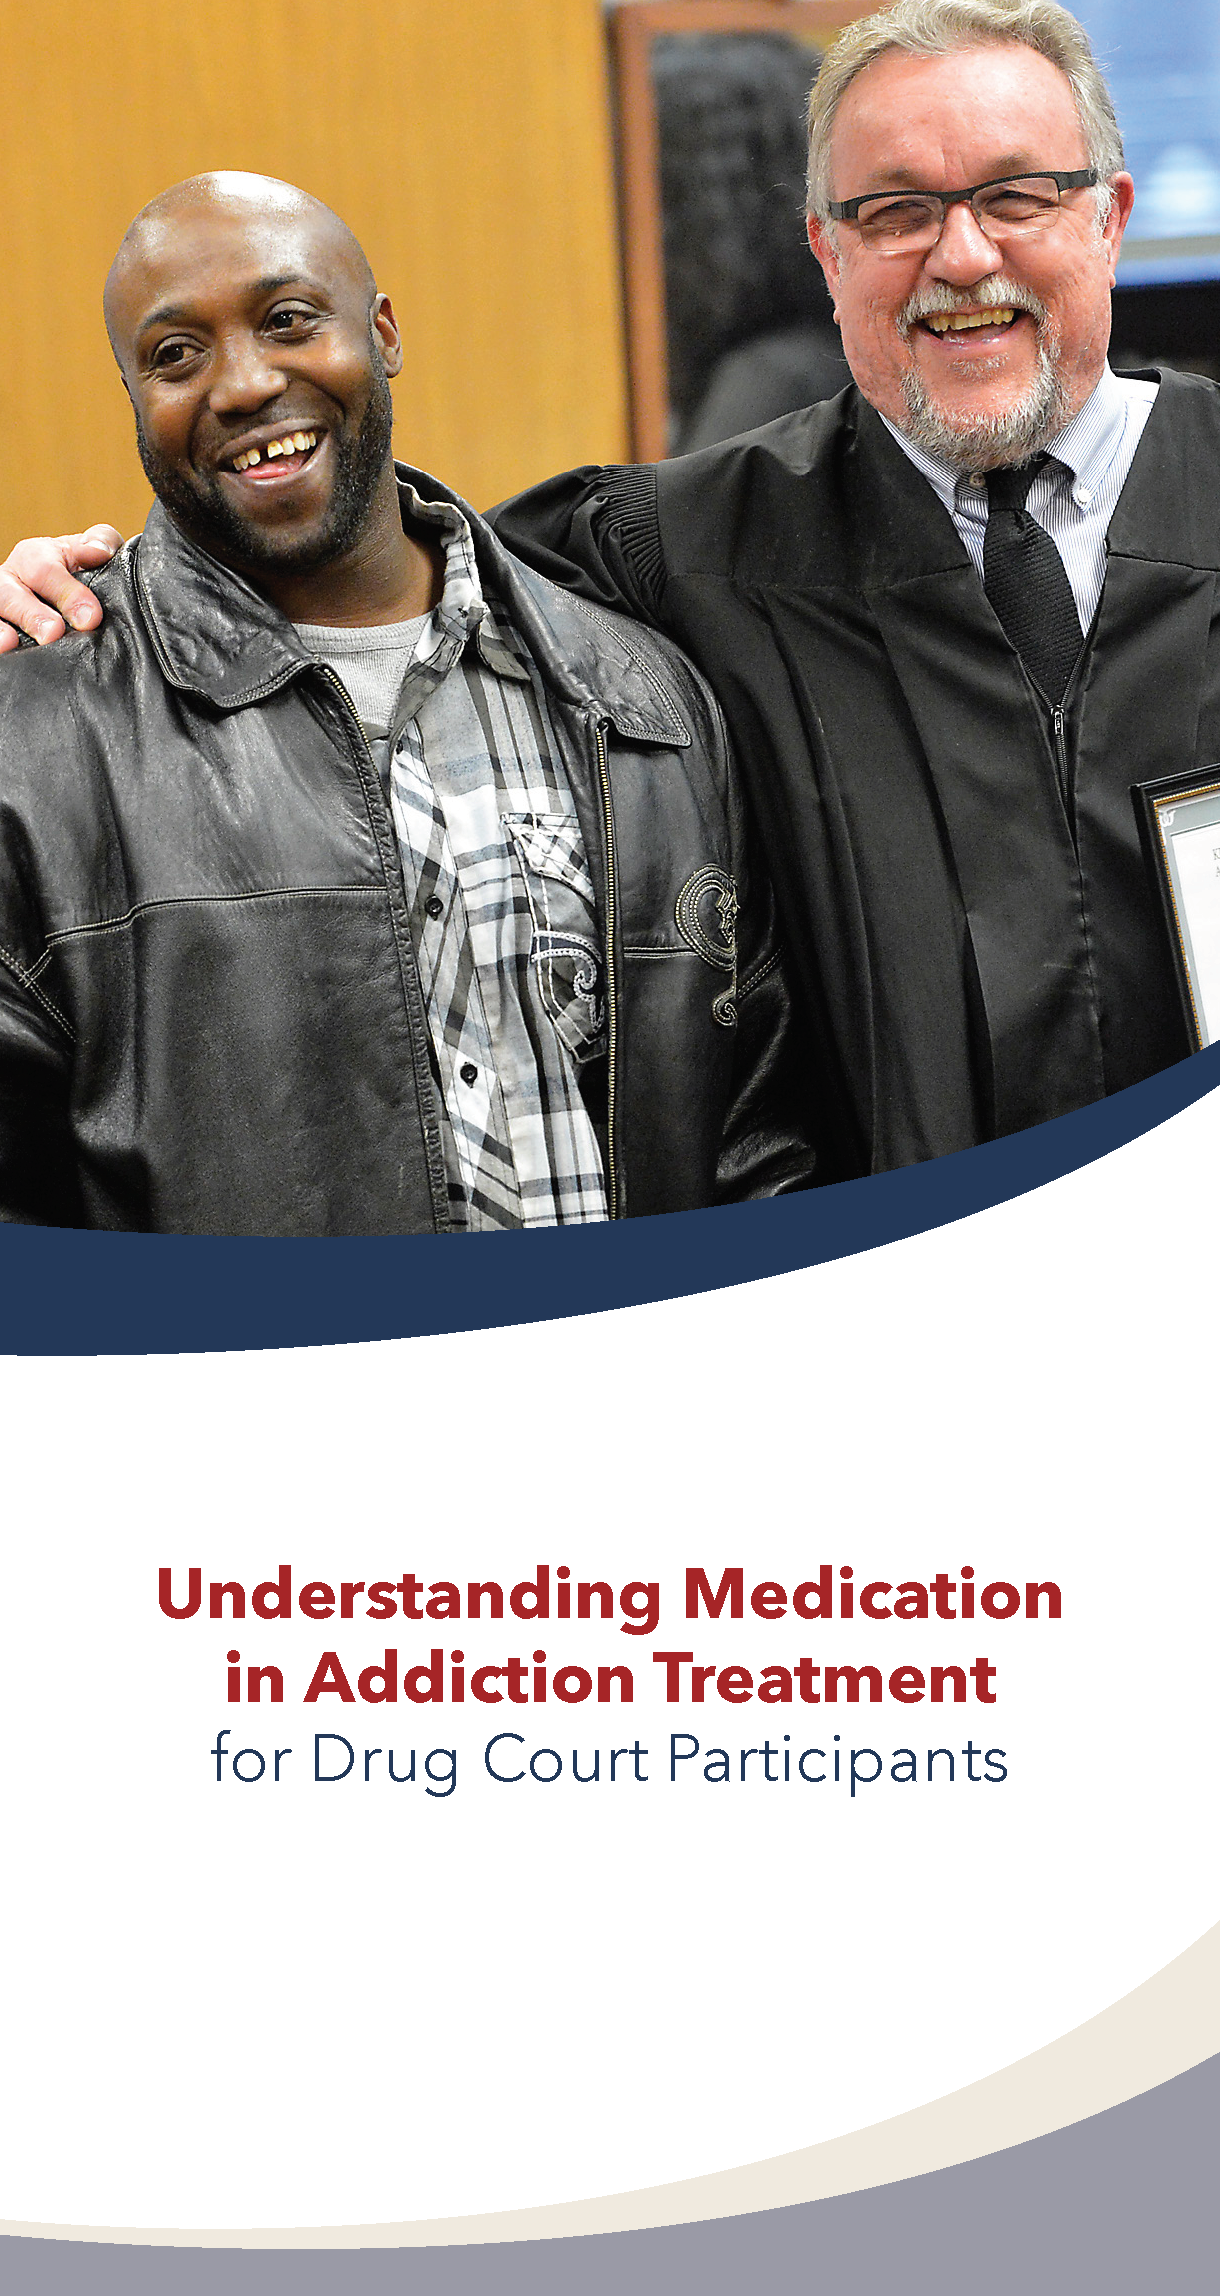 Understanding Medication in Addiction Treatment for Drug Court Participants